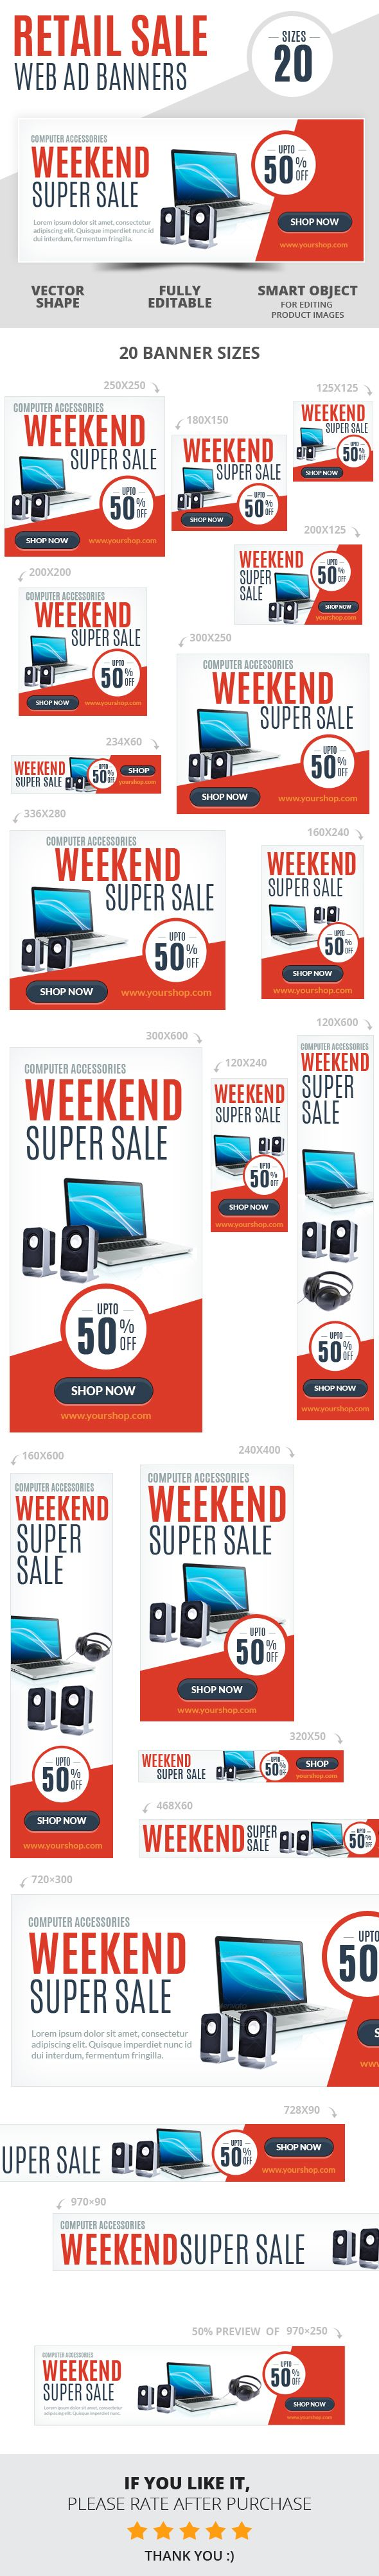 Weekend Super Sale Retail Web Ad Banner on Behance